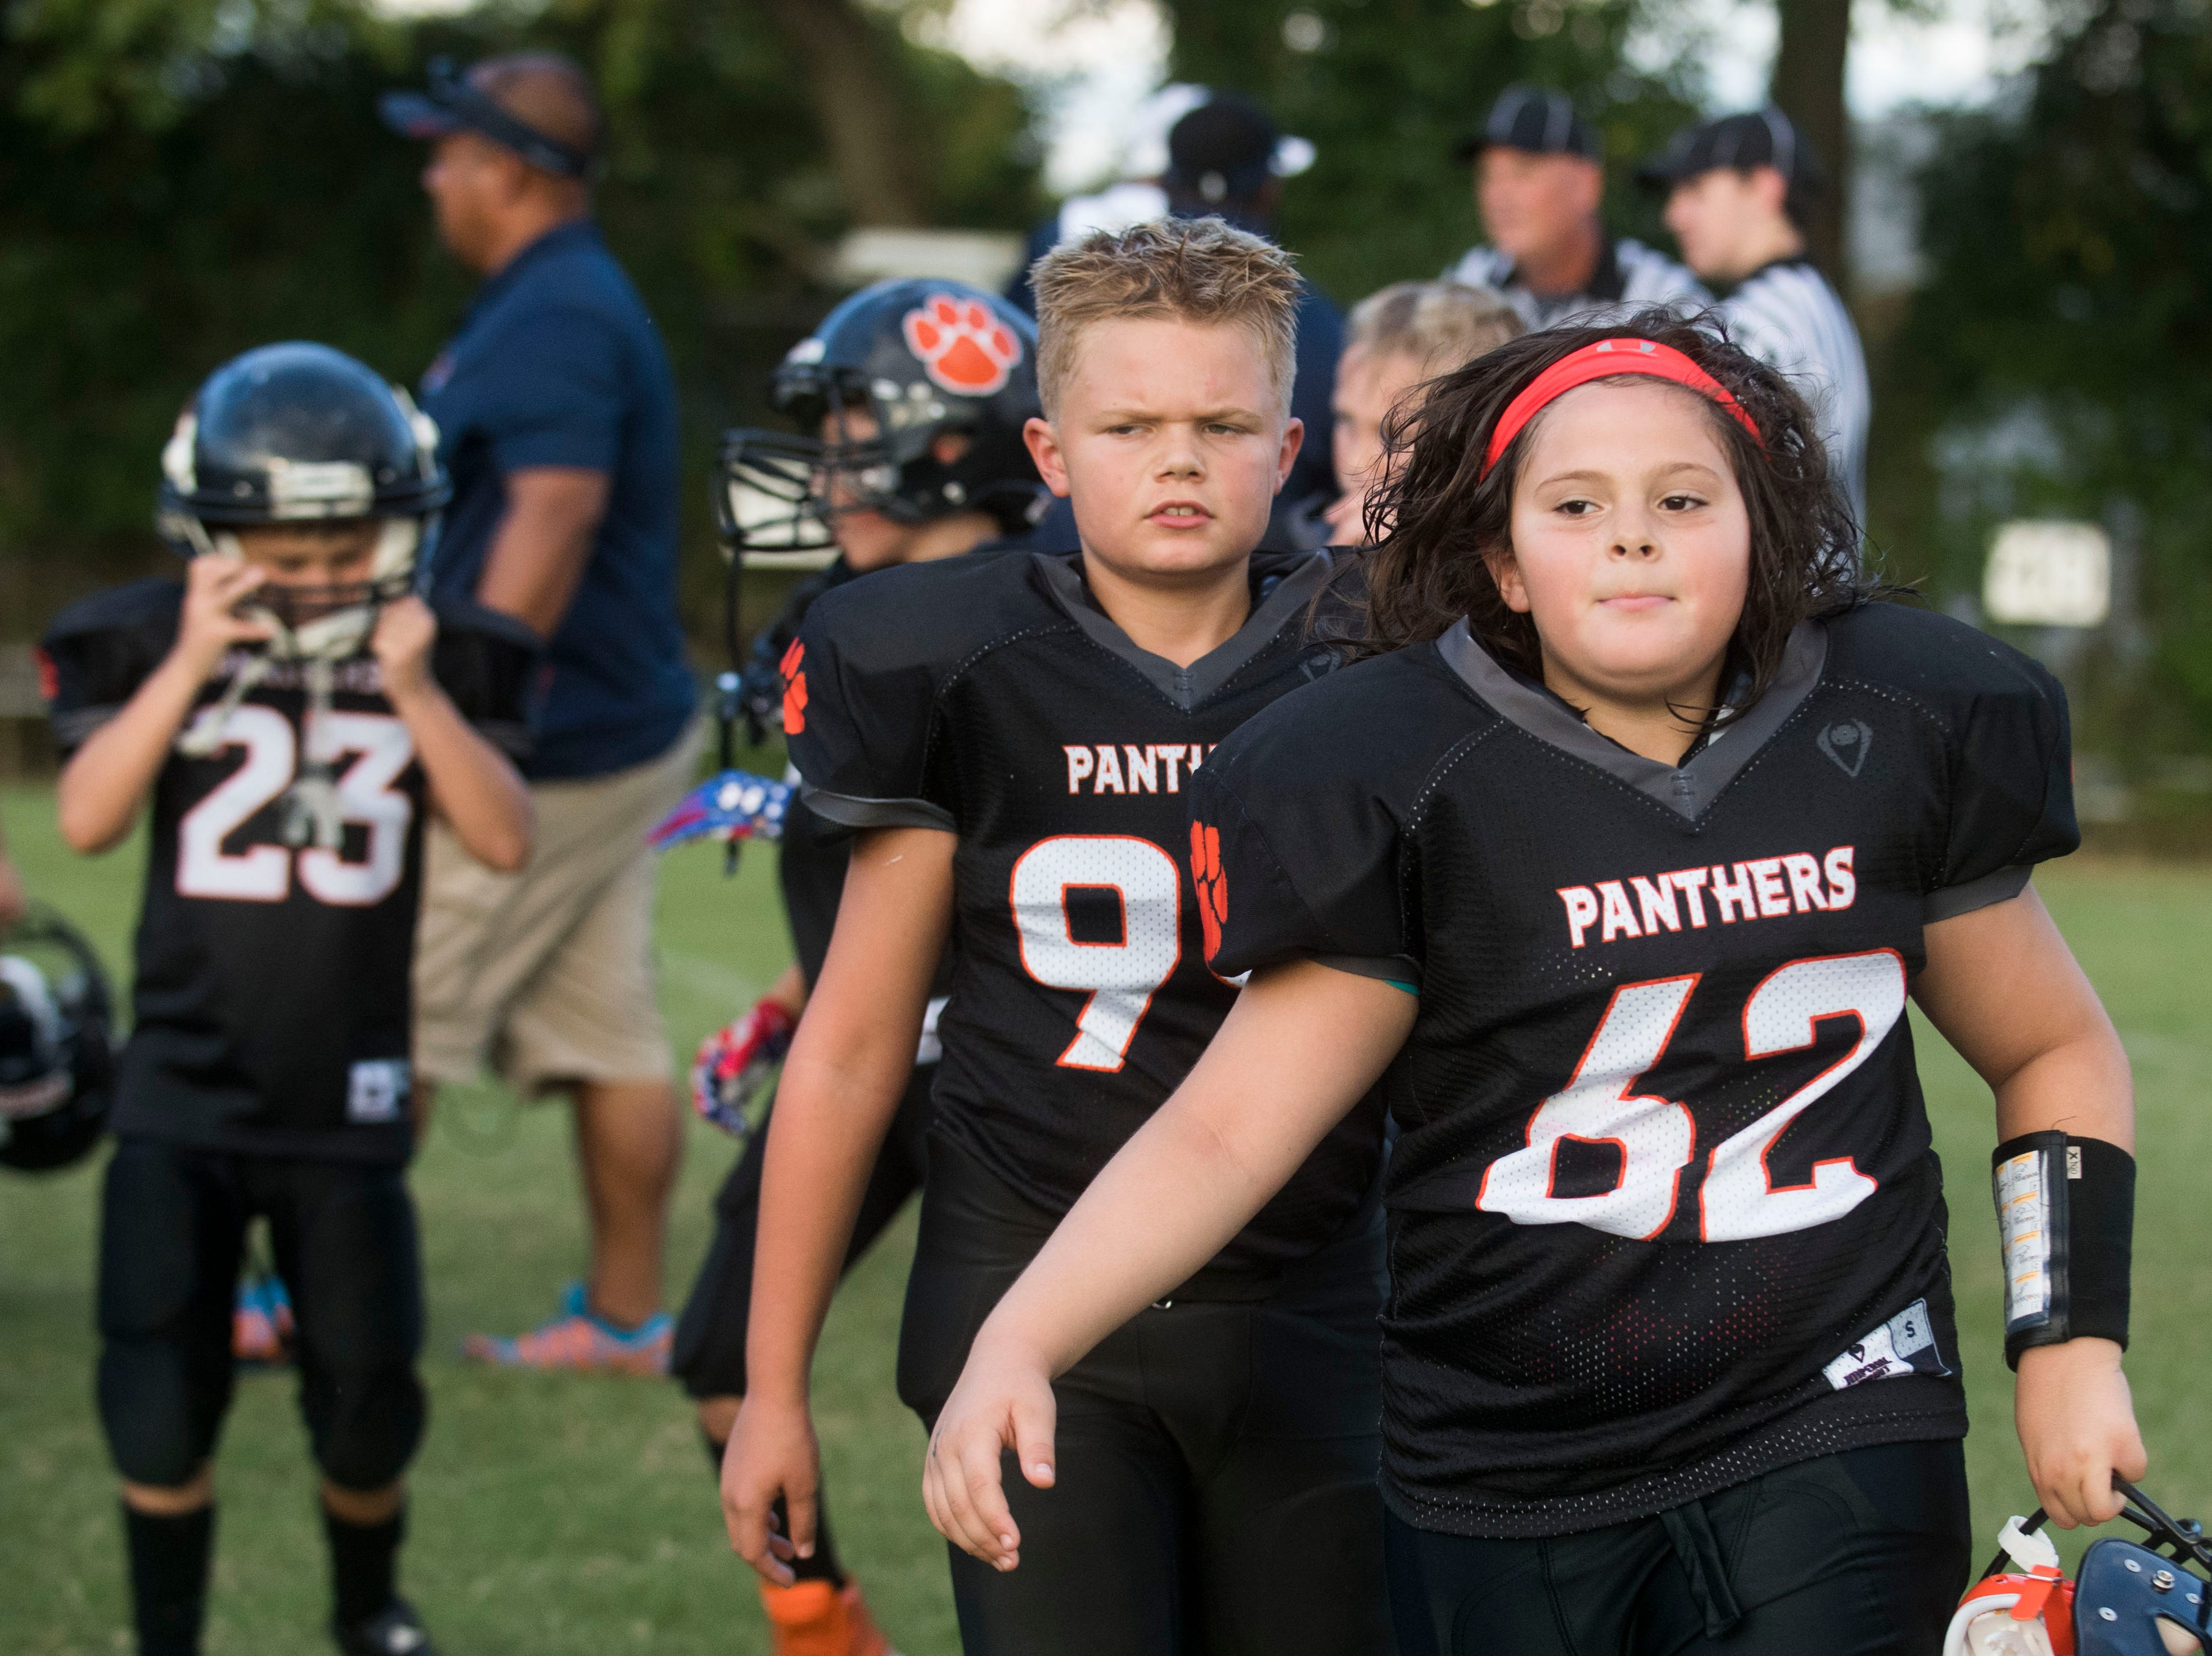 Ava Wooten, 9, of Powell, runs off the field with her 9U Powell Youth football team Tuesday, Sept. 11, 2018.